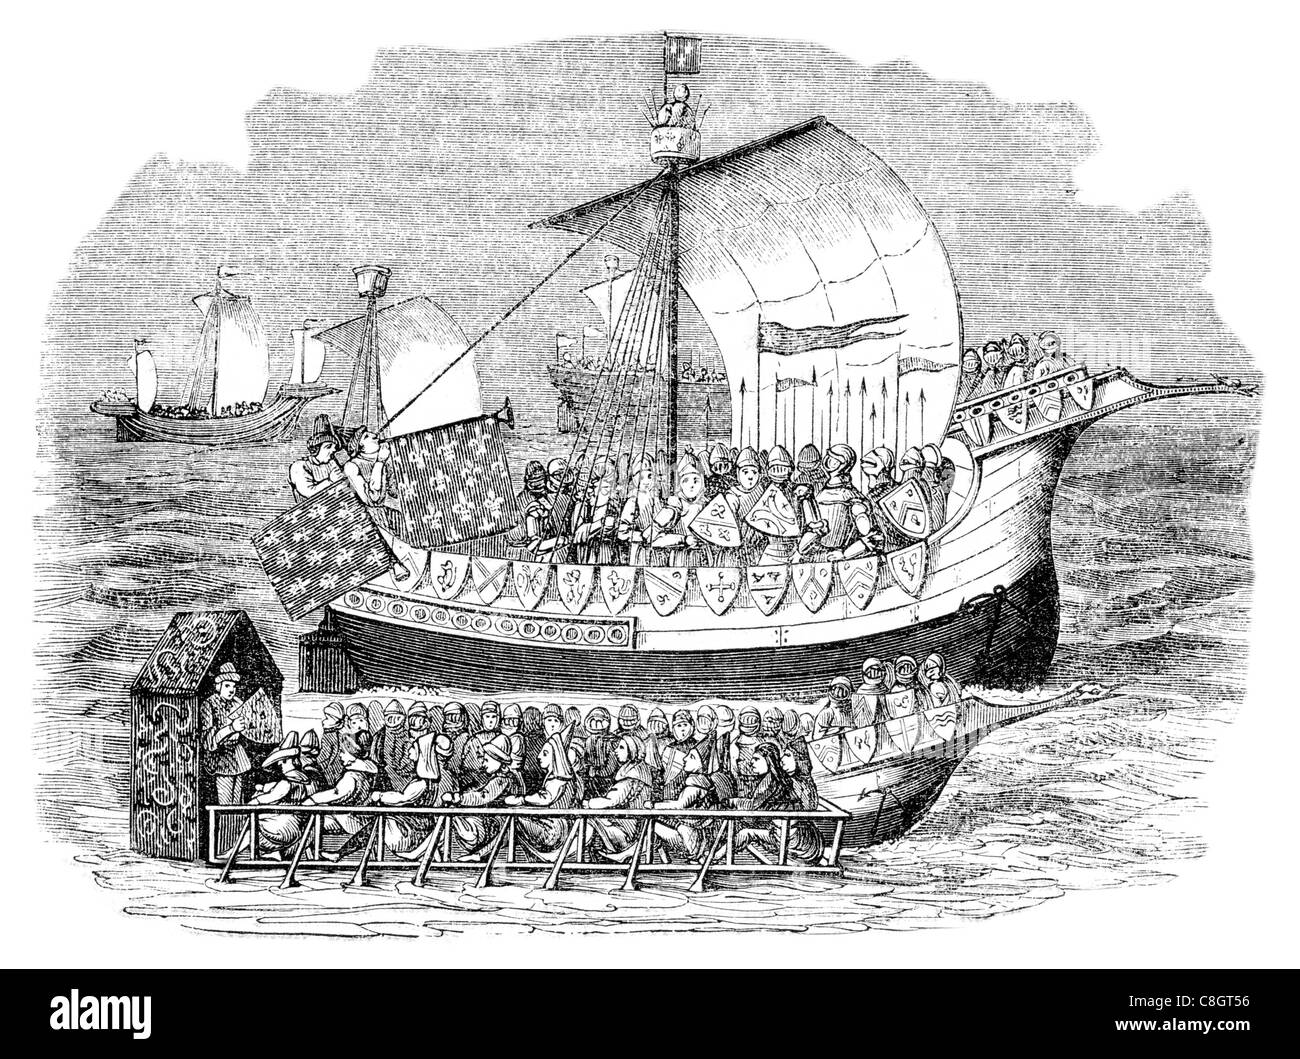 War Galleys of the 15th century sail sailing sailor ship ships shipping war marine Naval Navy vessel cargo goods - Stock Image